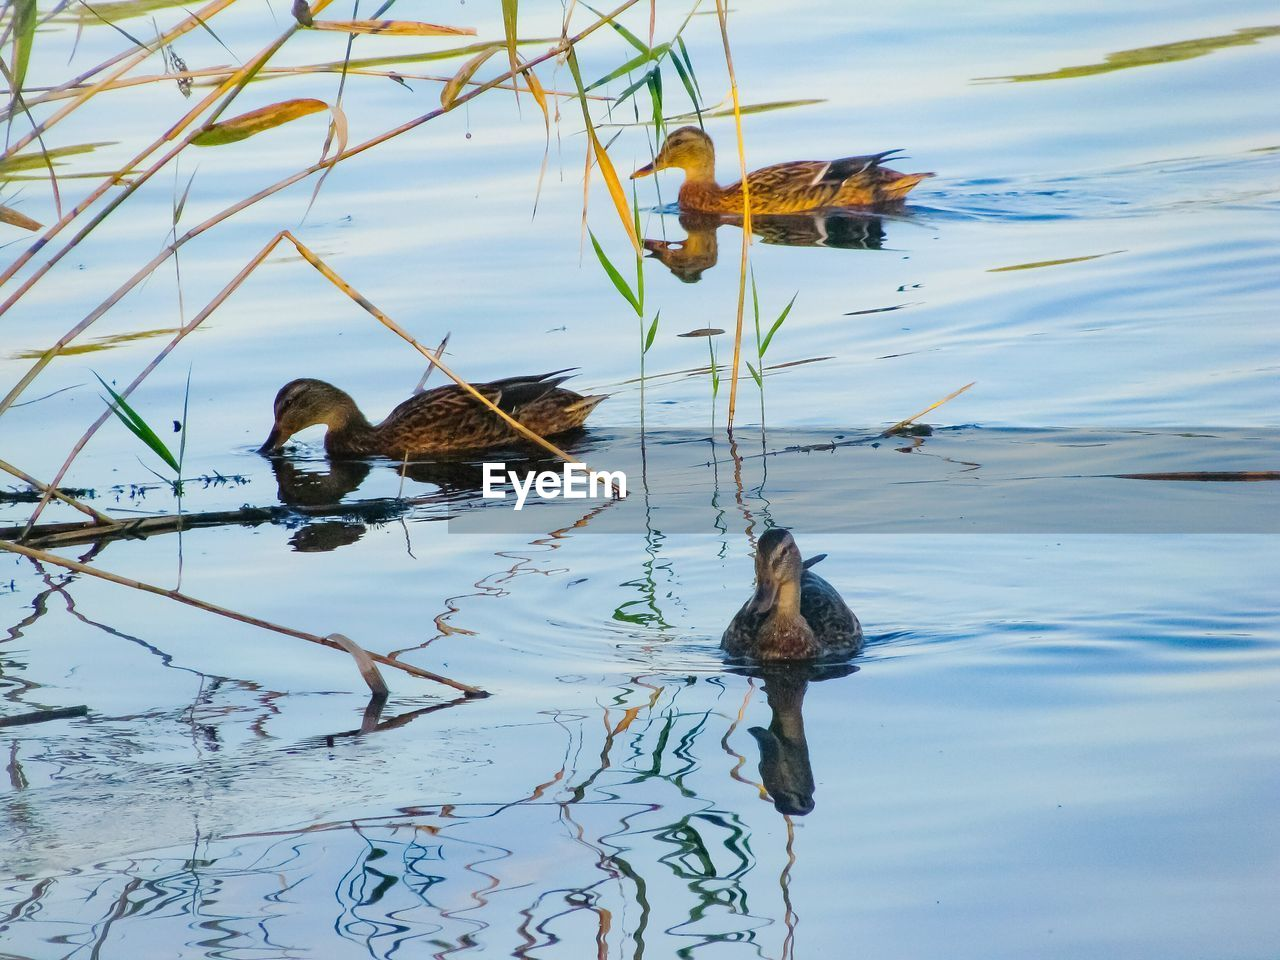 animals in the wild, animal wildlife, animal themes, water, young bird, lake, duck, bird, nature, reflection, no people, day, swimming, duckling, young animal, outdoors